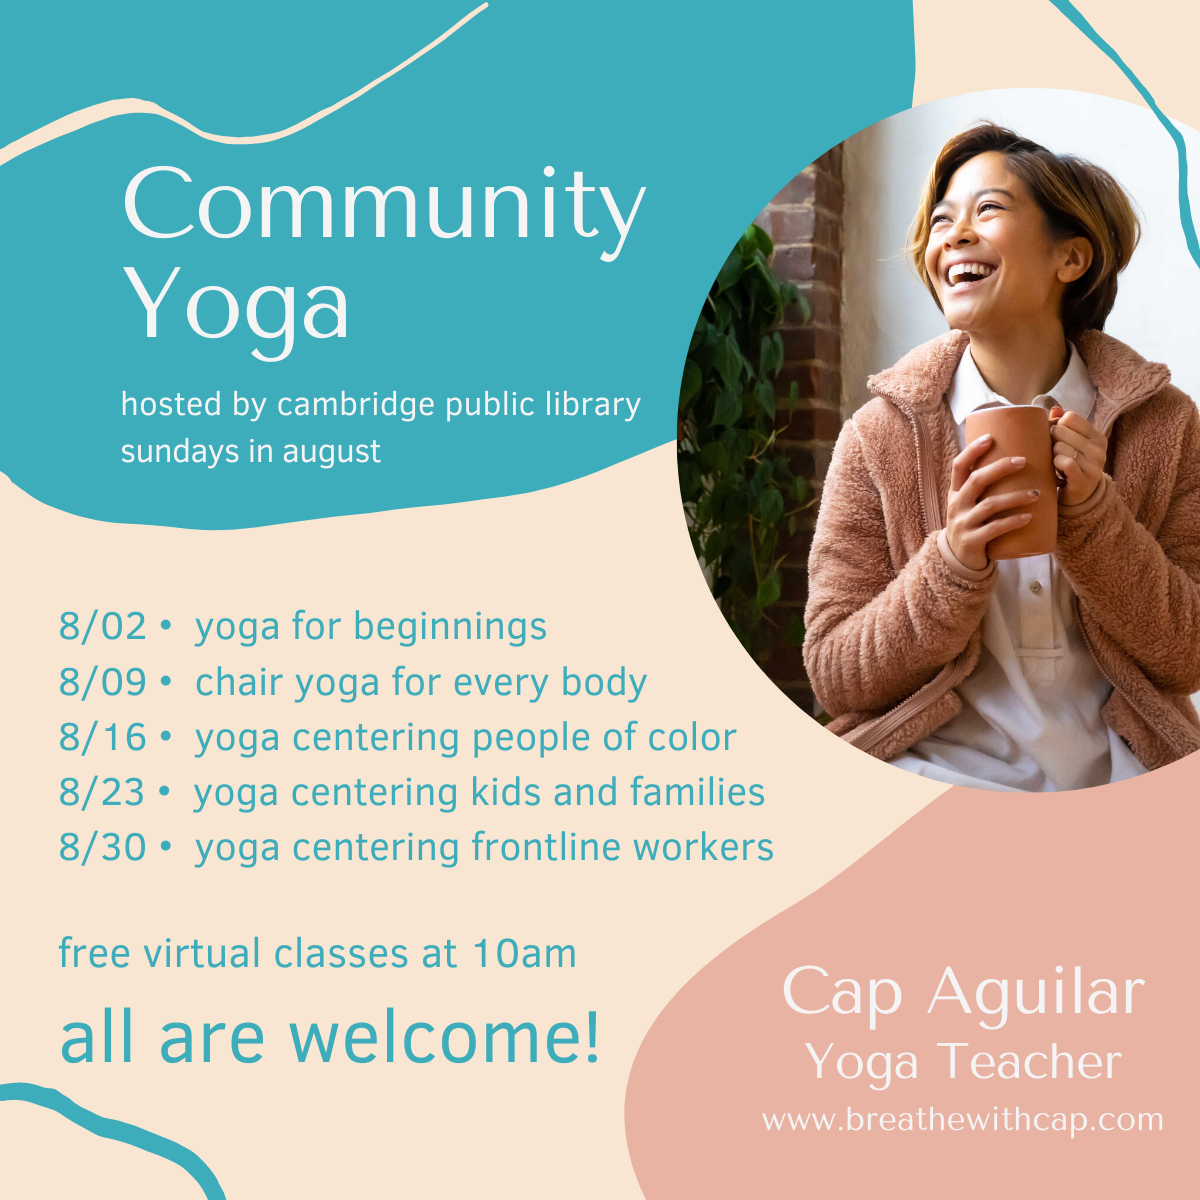 Event image for Community Yoga with Cap Aguilar